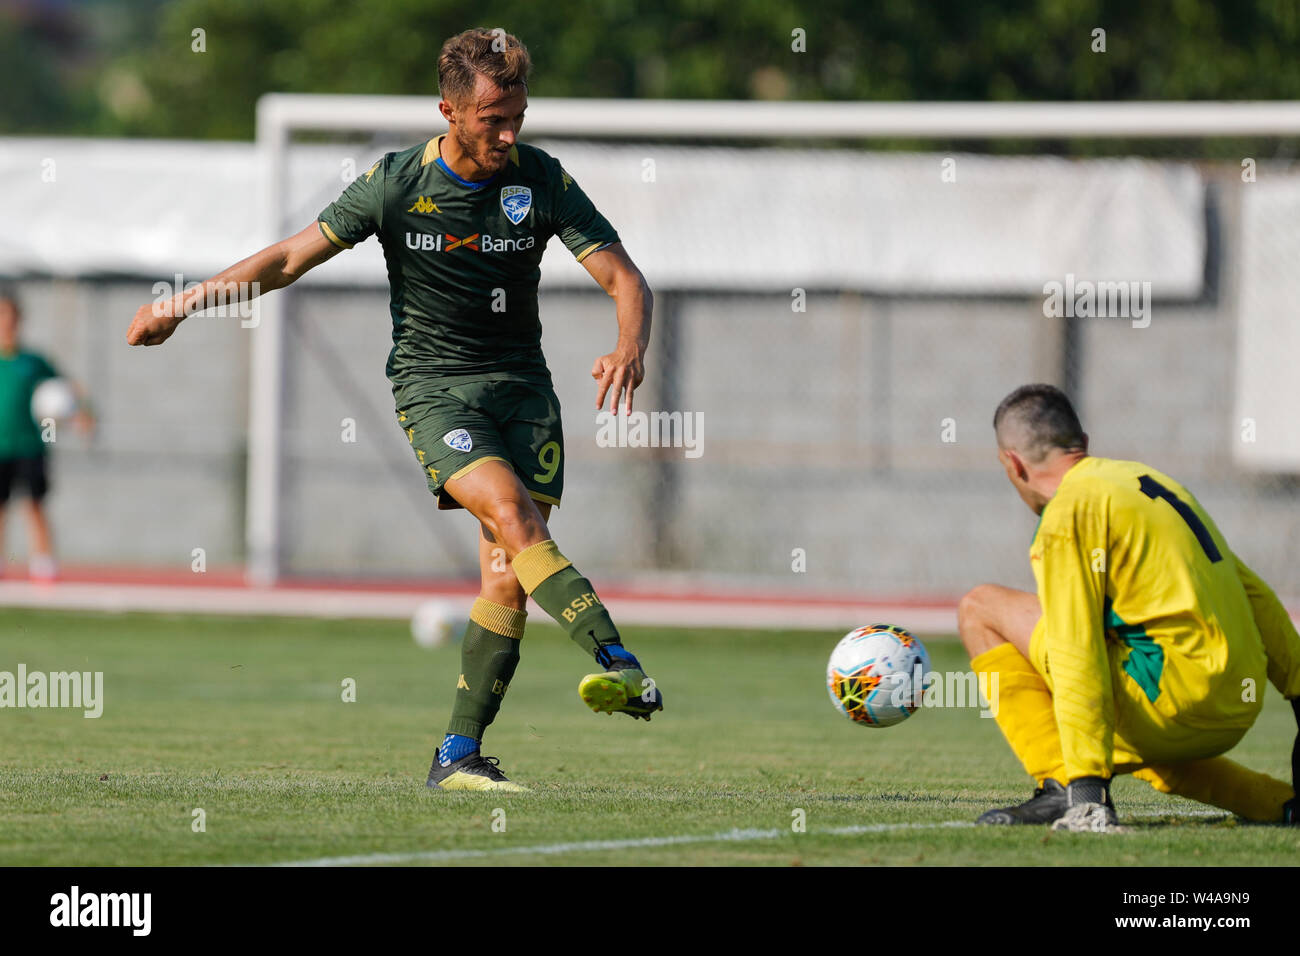 Darfo Boario, Italia. 21st July, 2019. Foto Stefano Nicoli/LaPresse21 luglio 2019 Darfo Boario (Bs), Italia sport calcio Amichevole Brescia Darfo Pre Campionato di calcio Serie A 2019/2020 - Nella foto: Gol Alfredo Donnarumma Photo Stefano Nicoli/LaPresse July 20, 2019 Darfo Boario (Bs), Italy sport soccer Friendly match Brescia Darfo League A TIM 2019/2020 - In the pic: Alfredo Donnarumma Scores Credit: LaPresse/Alamy Live News - Stock Image